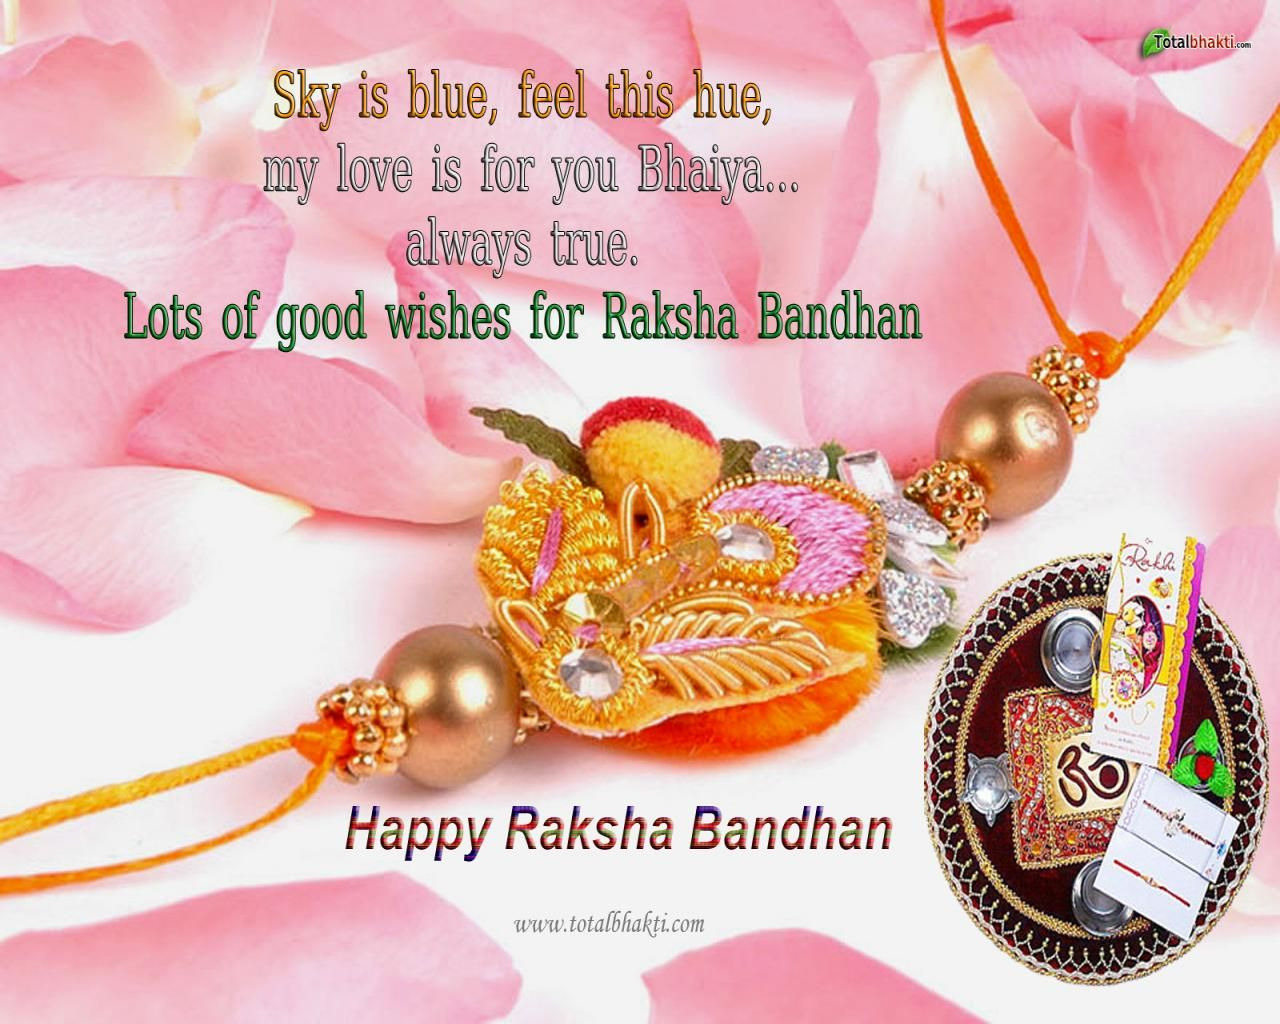 marathi essay on raksha bandhan Why would i choose to write my essay on one of the most beautiful how to write purchase order email days of the year i just printed out 8 copies and gave each child a die to roll and some crayons oh, thank you for the idea you essay on raksha bandhan in marathi recipe can organize your.